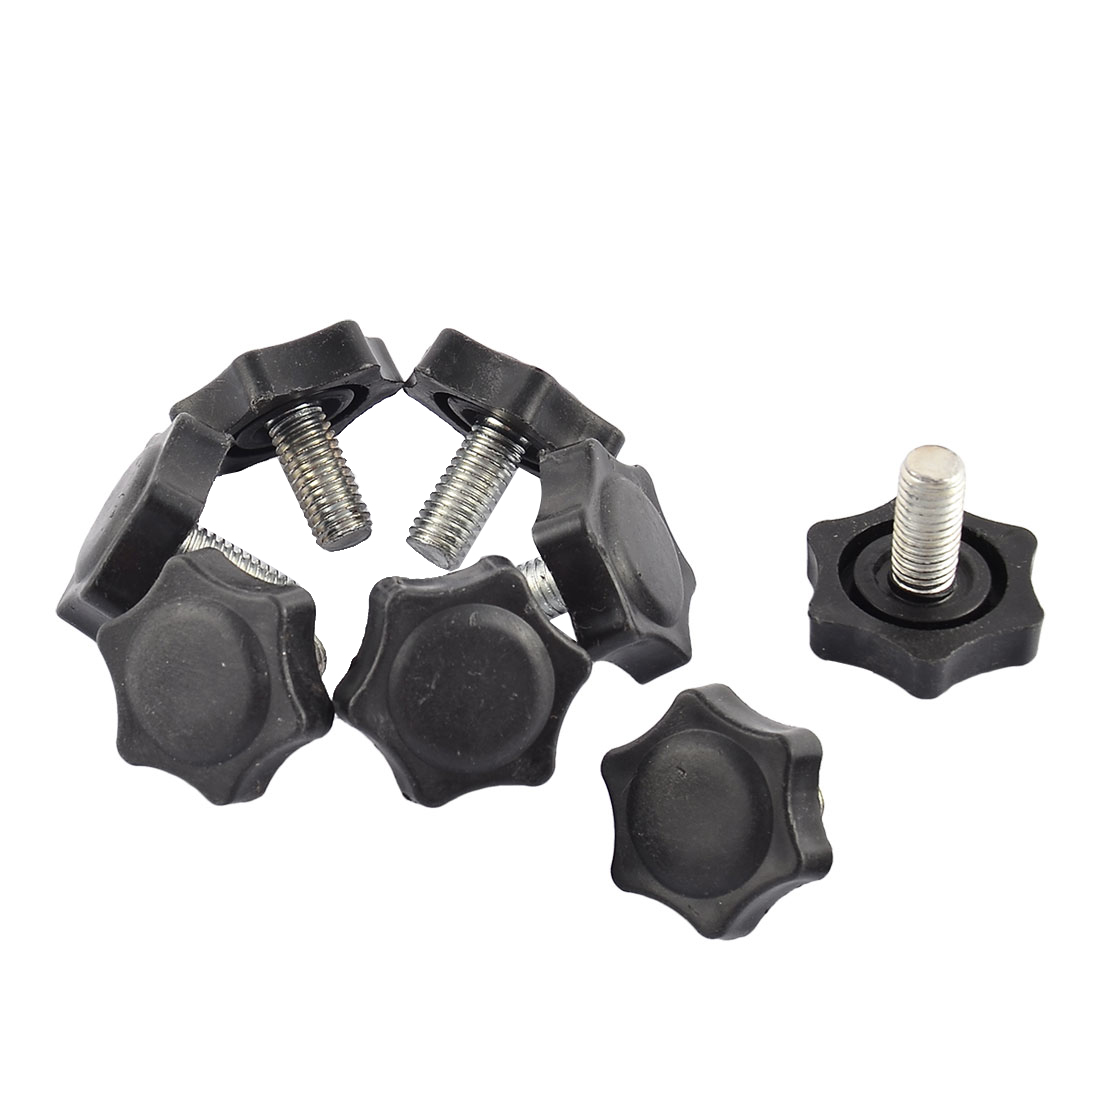 Home Plum Shaped Adjustable Furniture Glide Leveling Foot Adjuster Pad Tool 30mm Base Dia 8pcs